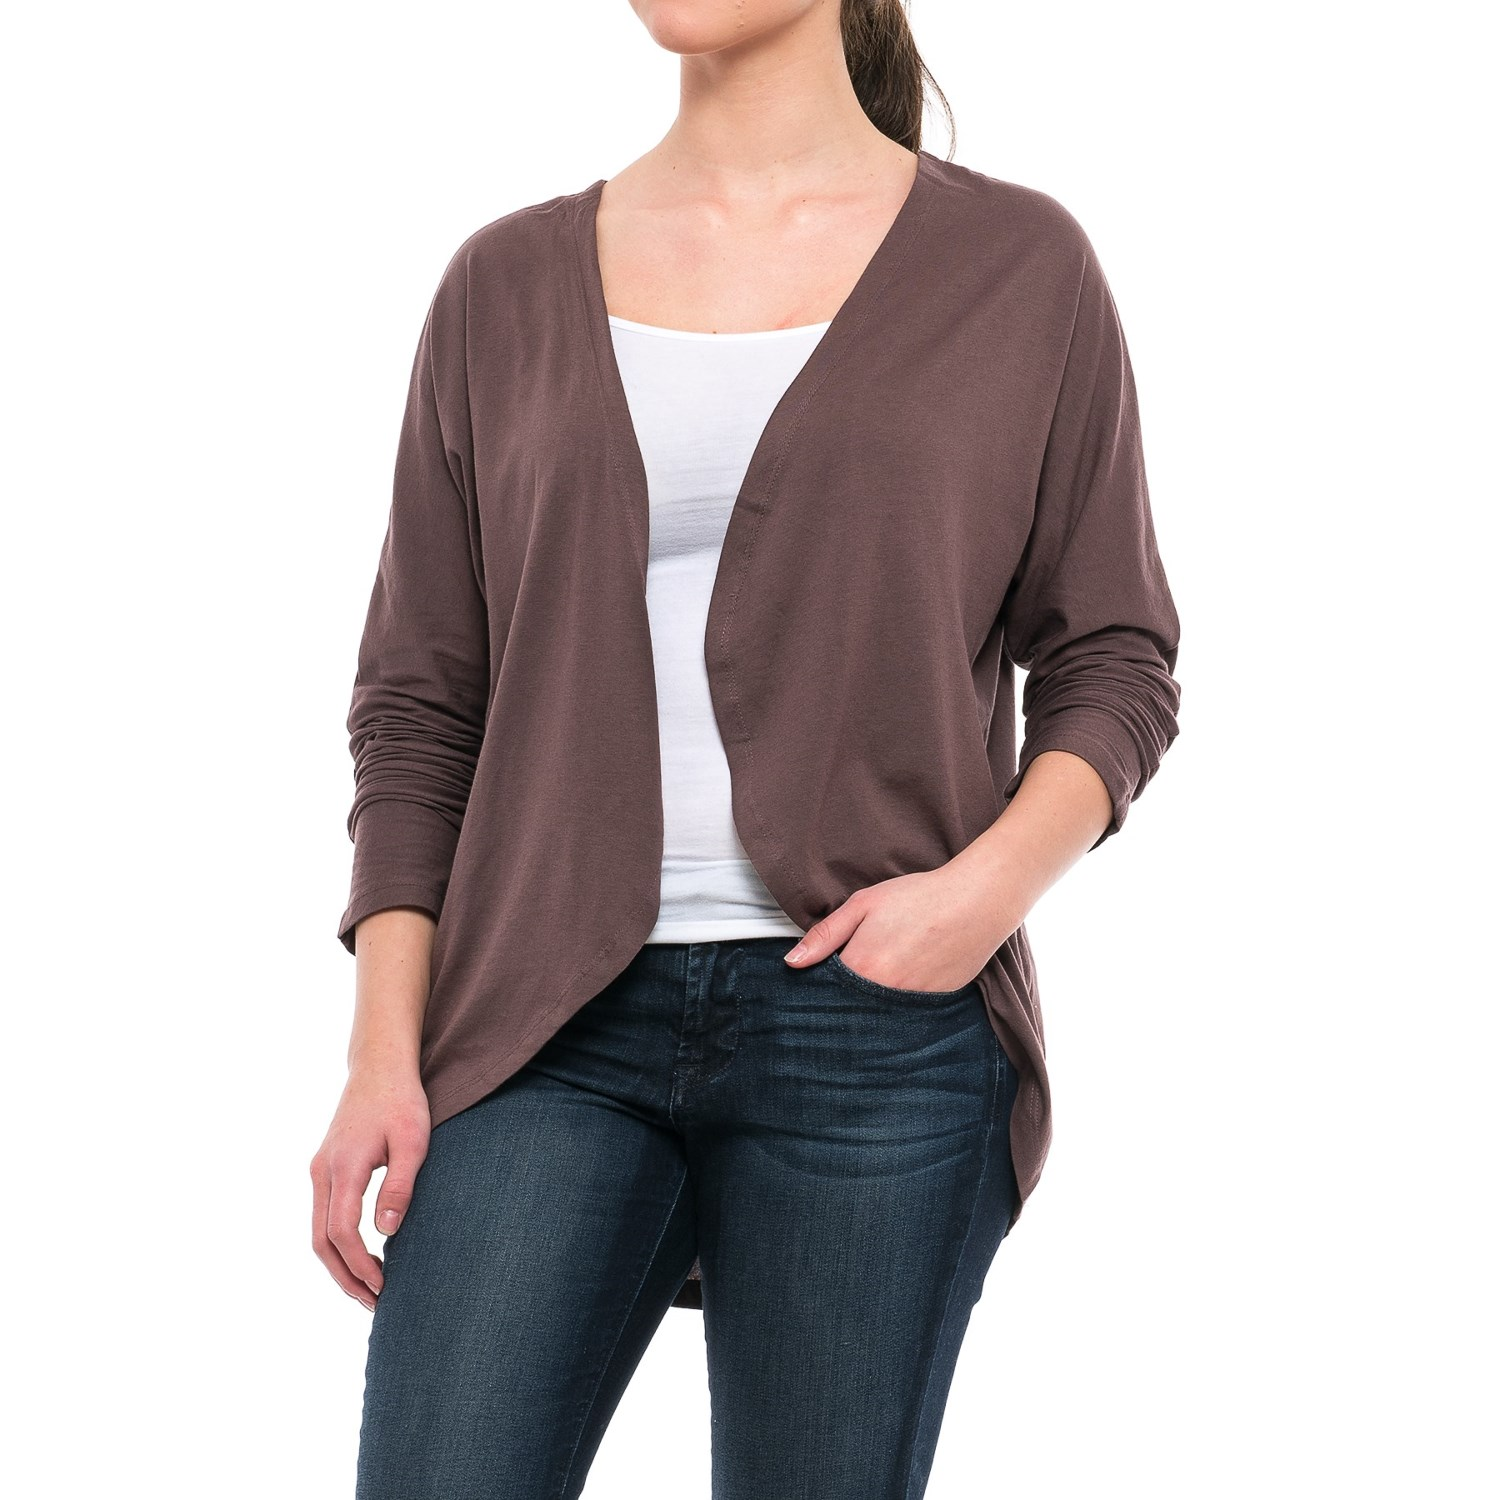 Threads 4 Thought Drapey Cardigan Shirt (For Women) - Save 56%